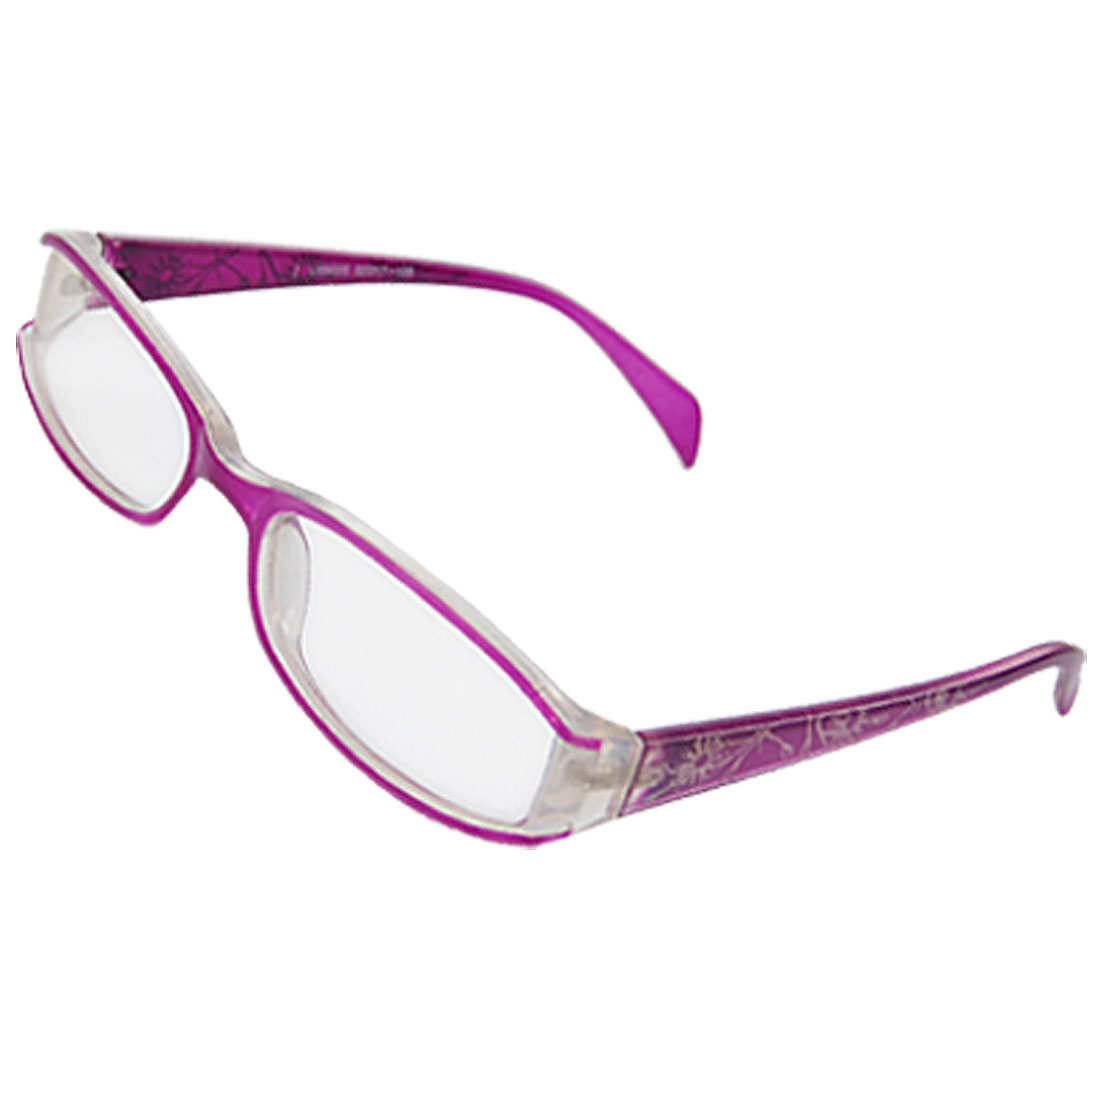 Full Frame Flower Pattern Plastic Purple Plano Glasses for Lady